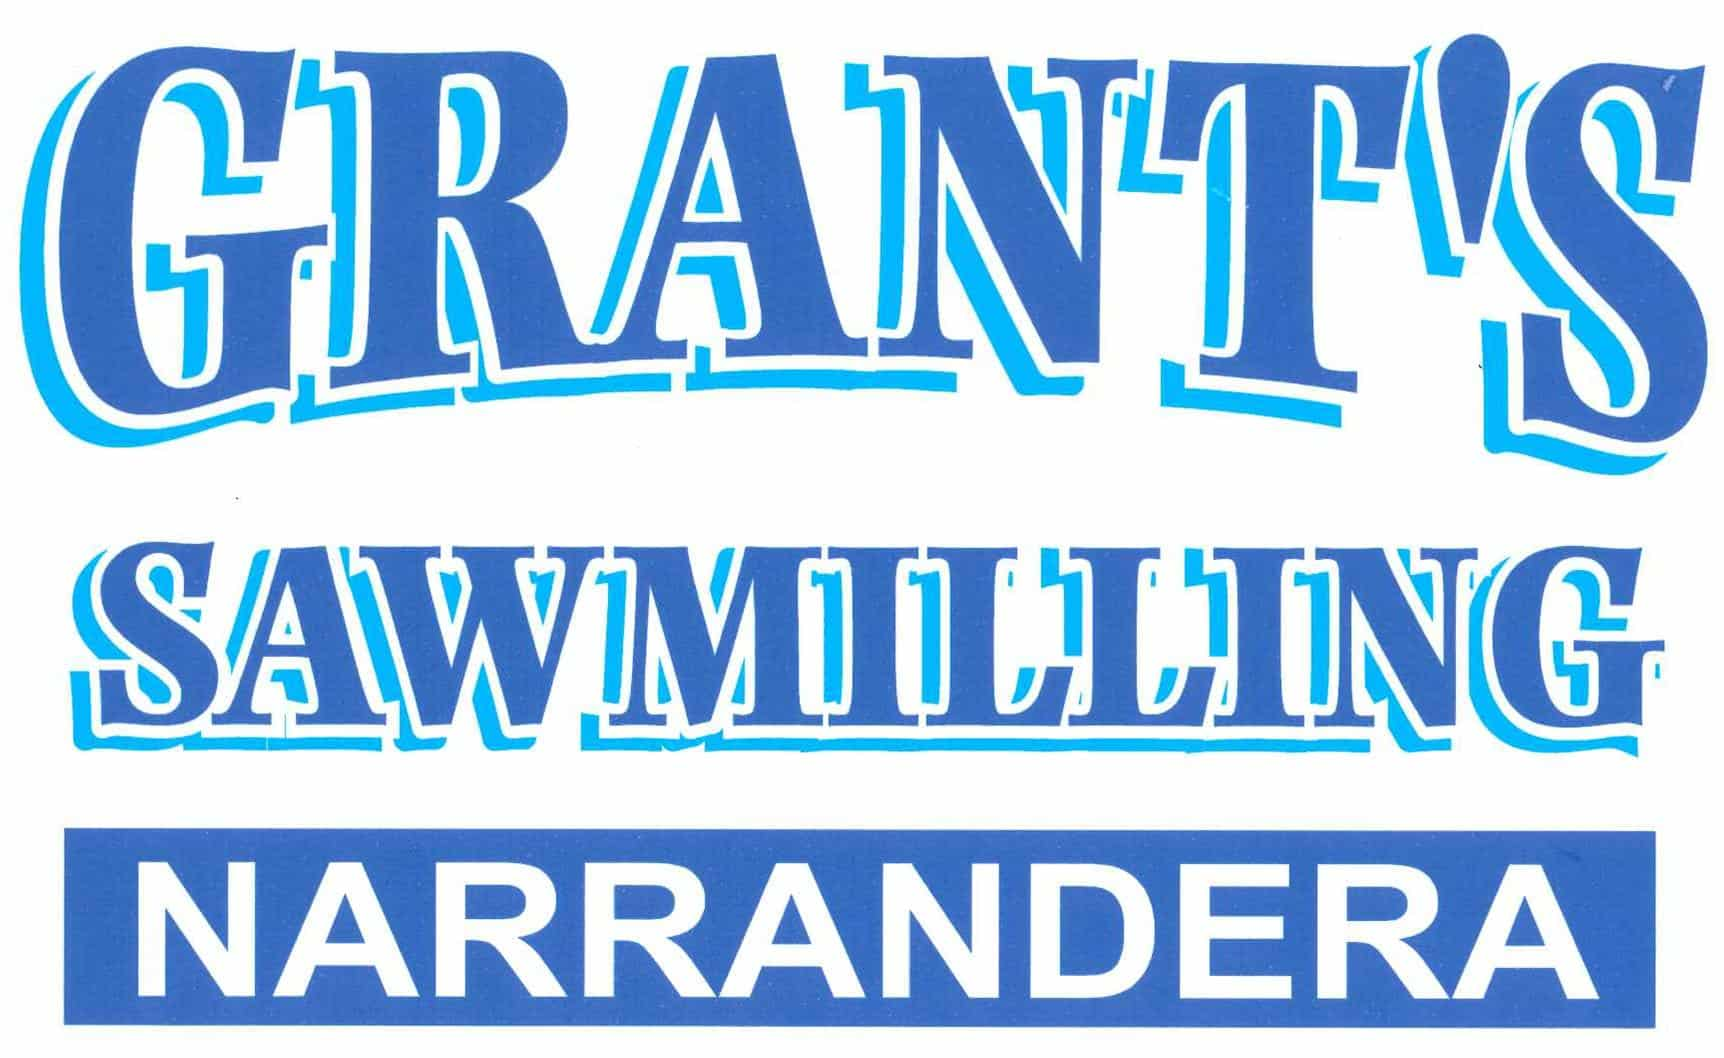 grants-sawmilling-narrandera